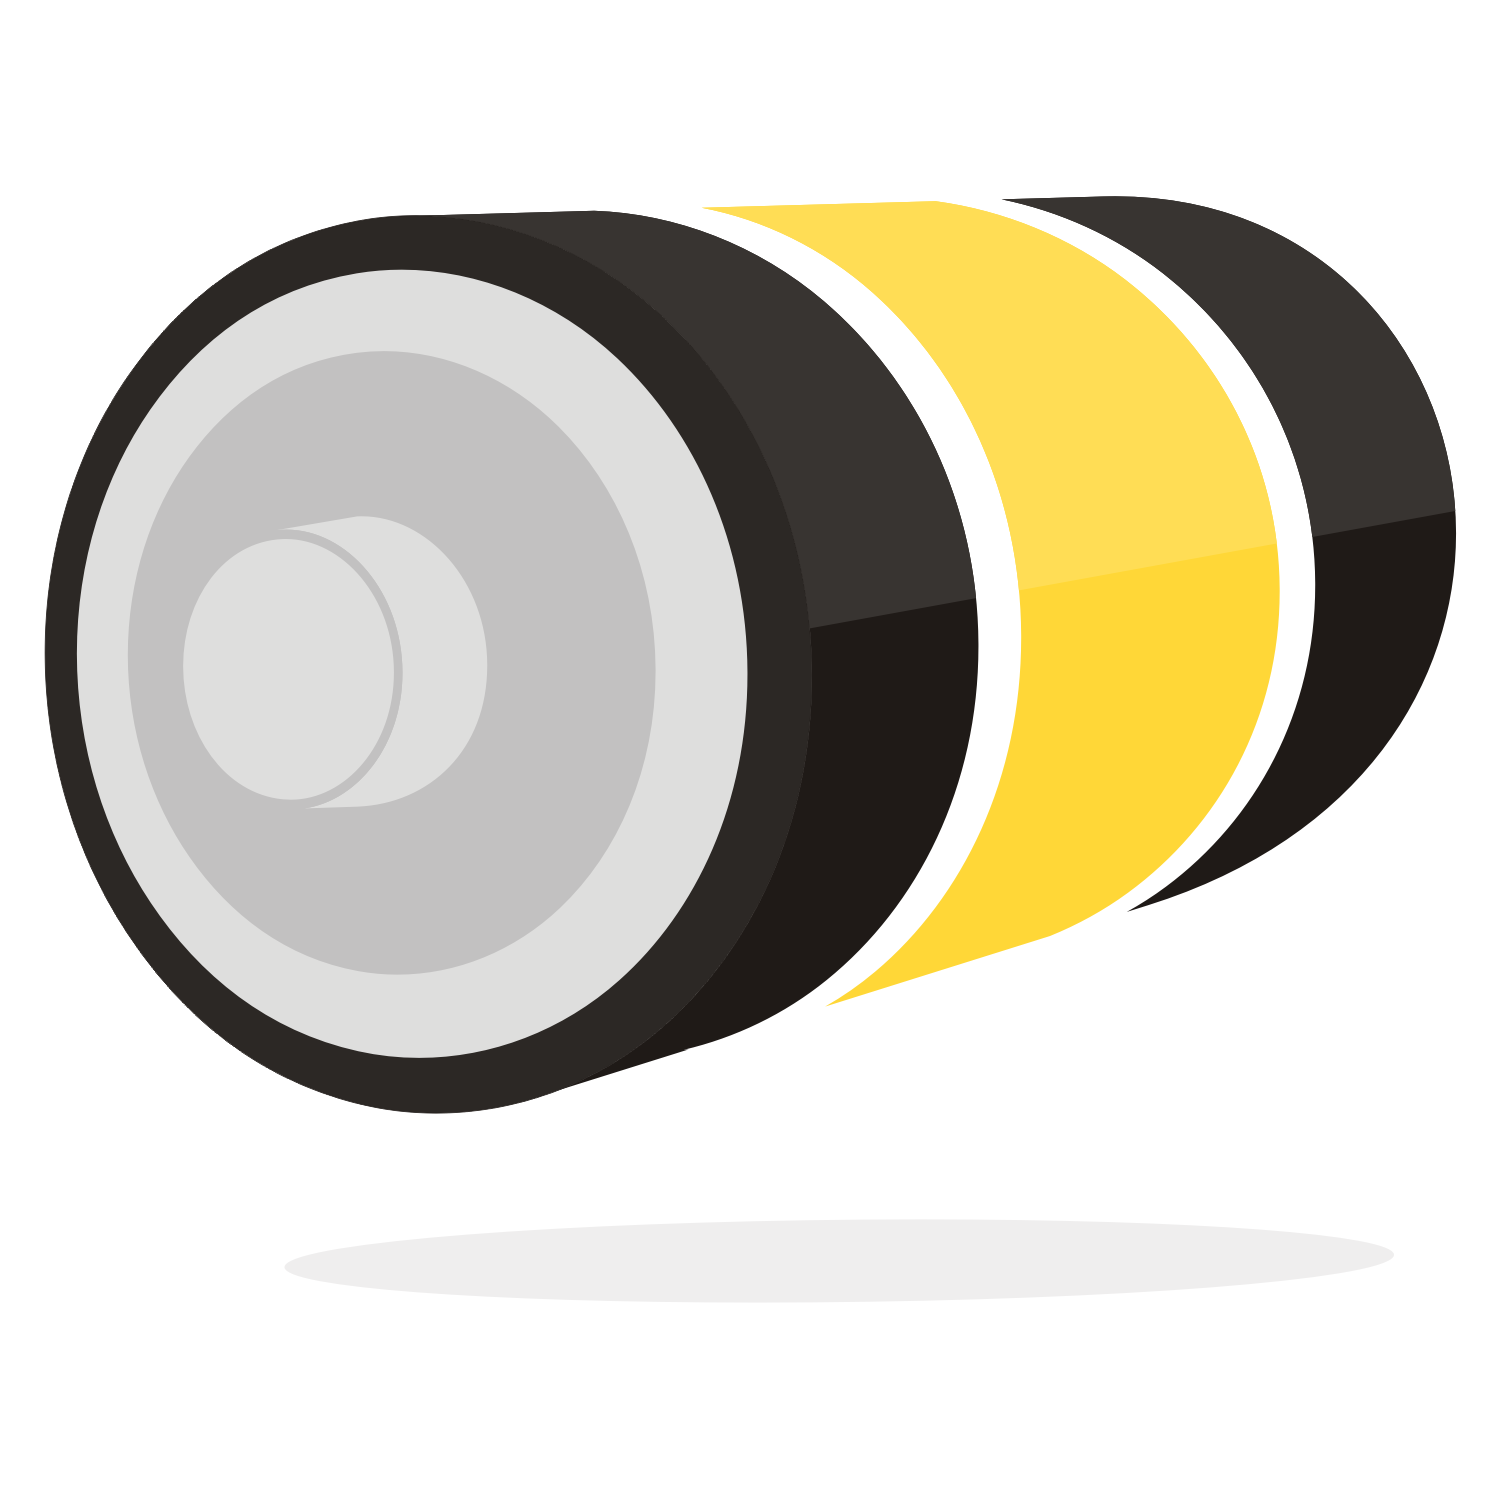 3D battery. Free vector illustration.